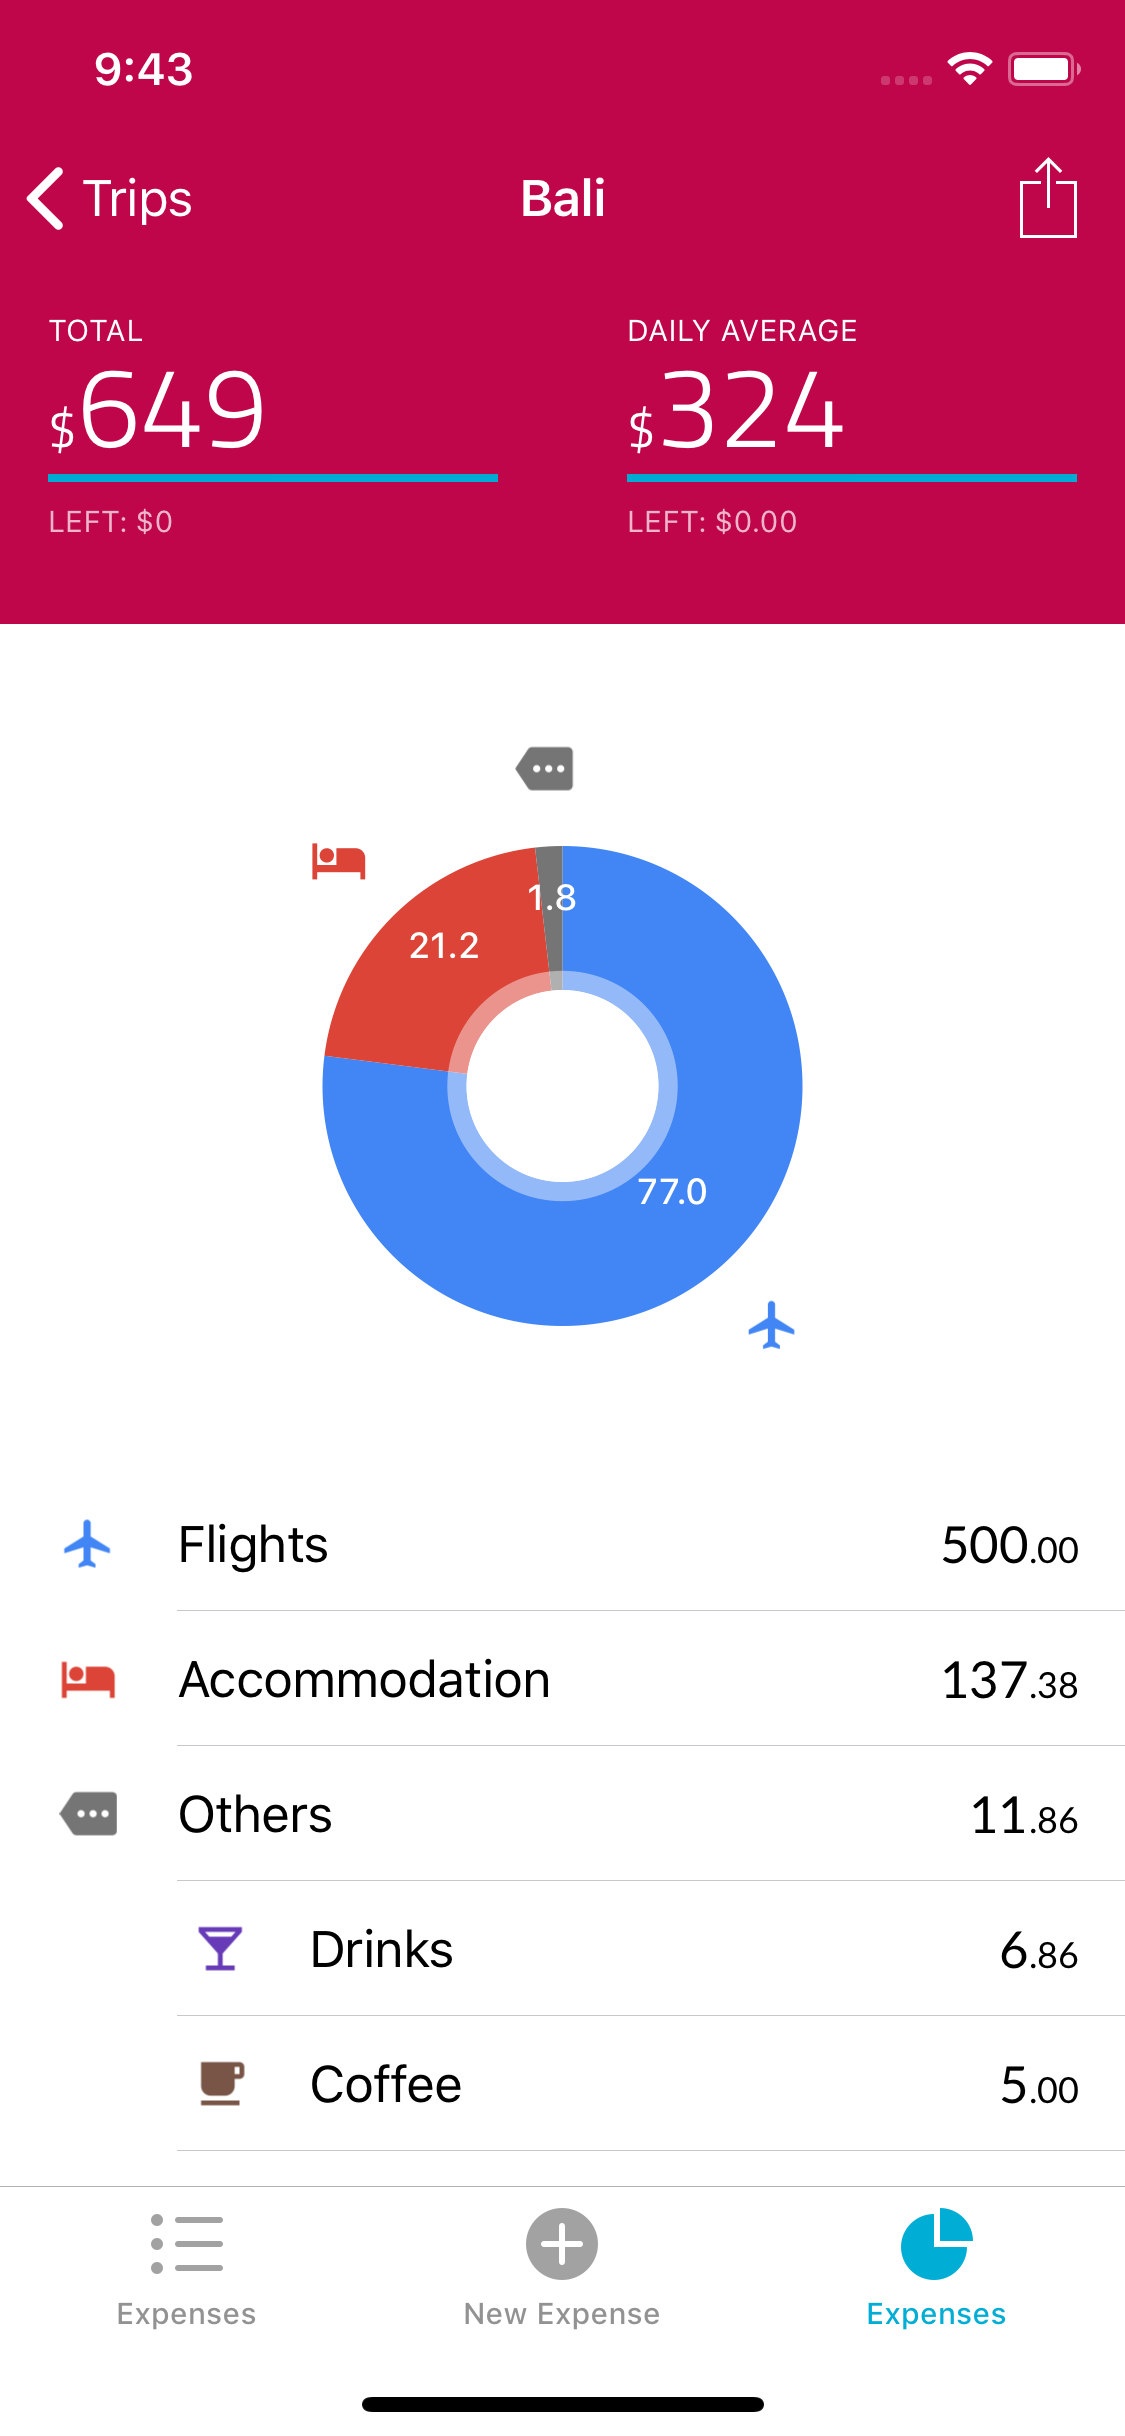 TravelSpend for iOS 🍏 - News & Updates - TravelSpend Community